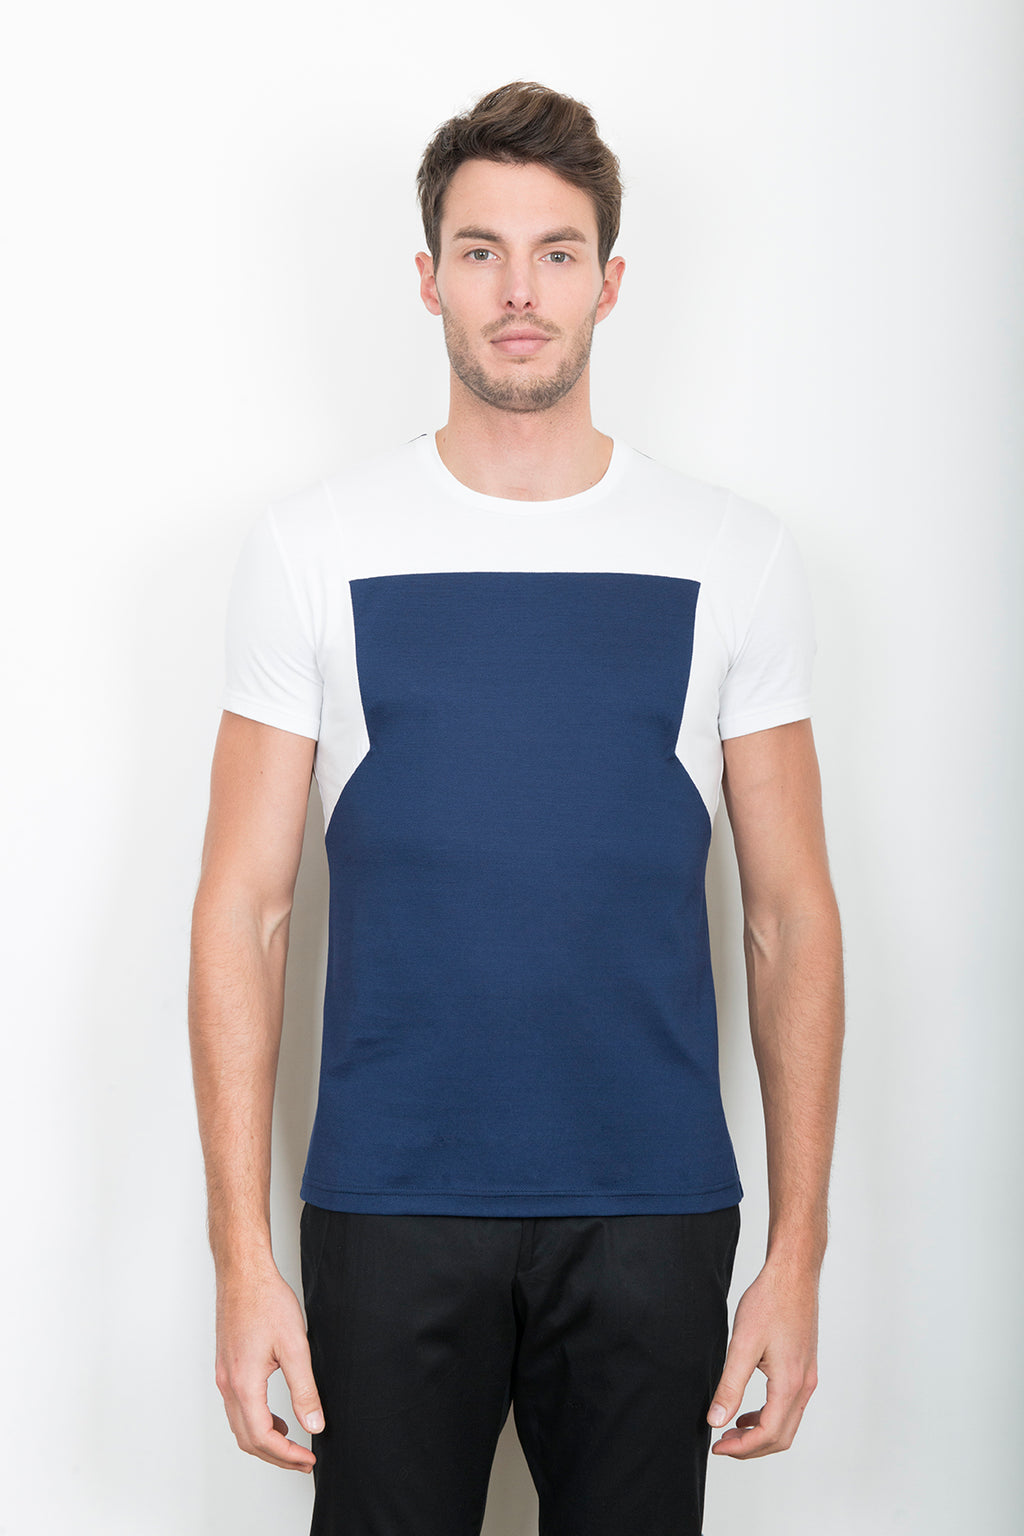 Sébastien Blondin haut top tee-shirt workwear tablier apron marine navy blanc white piqué sport sportswear chic été summer coton cotton maille knitwear créateur designer nouveau new basique basic mode fashion homme man men men's world